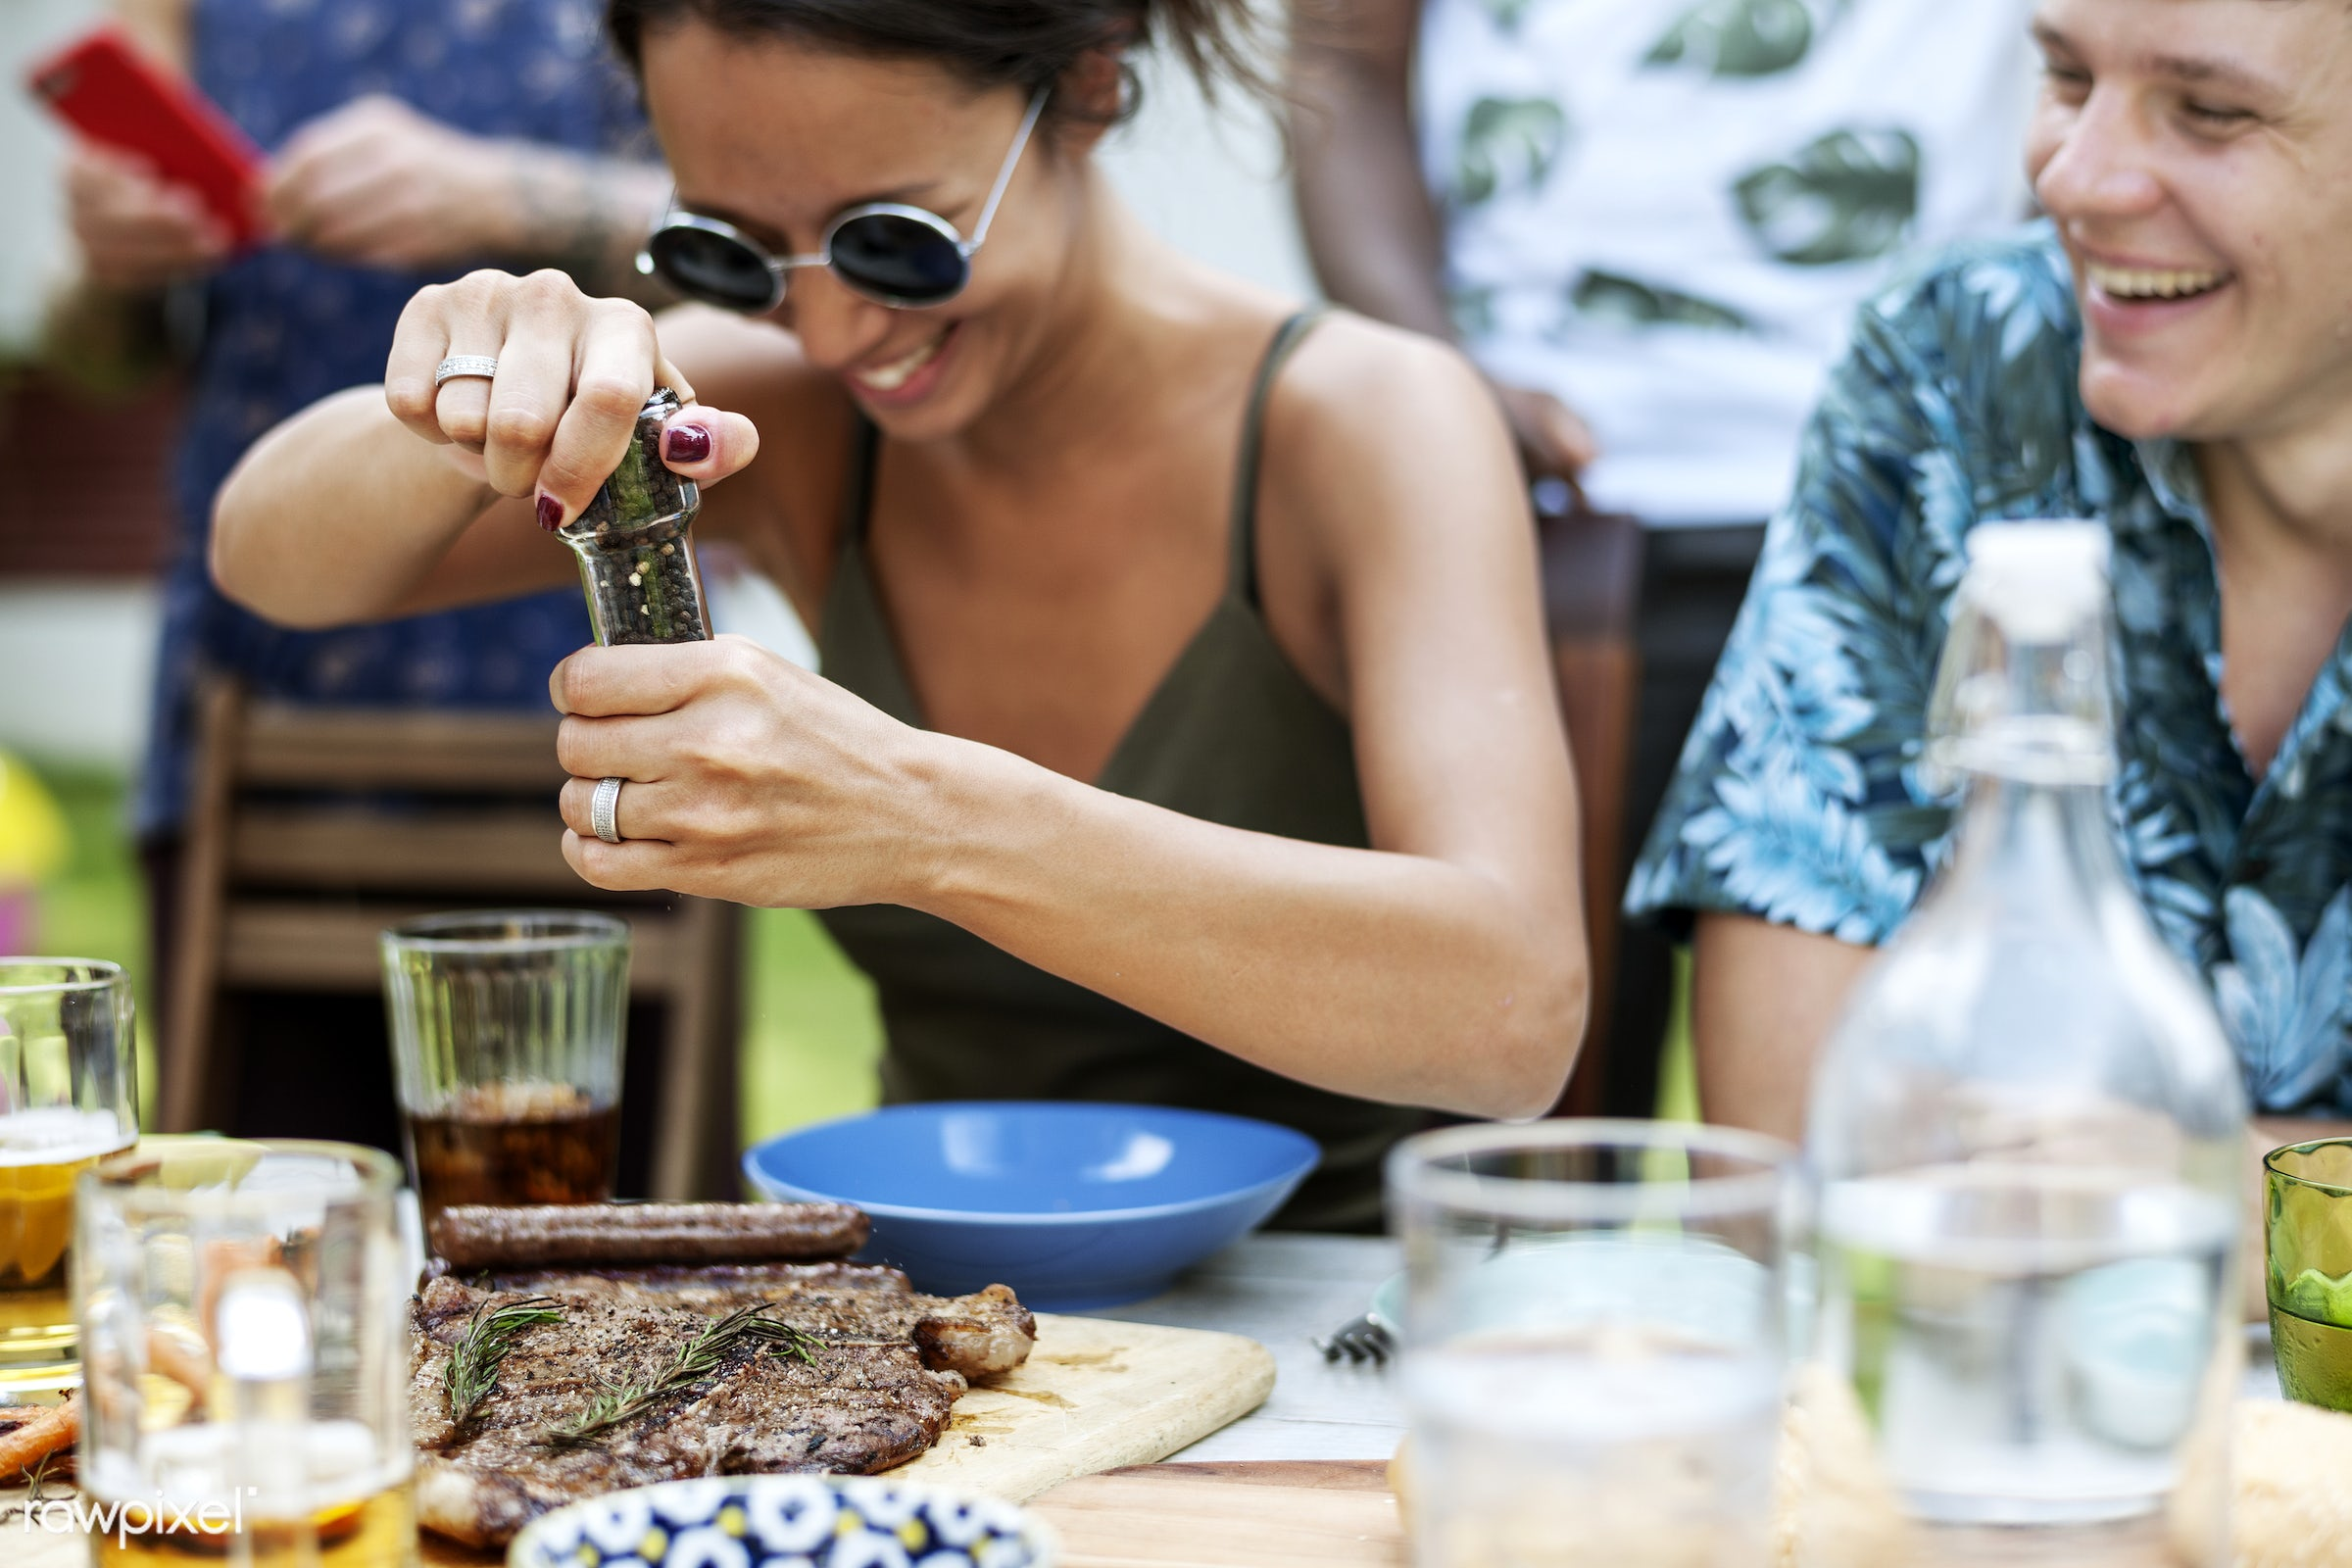 A woman using a pepper grinder at a meal - peppers, yard, cuisine, relax, diverse, party, homemade, spices, people, together...